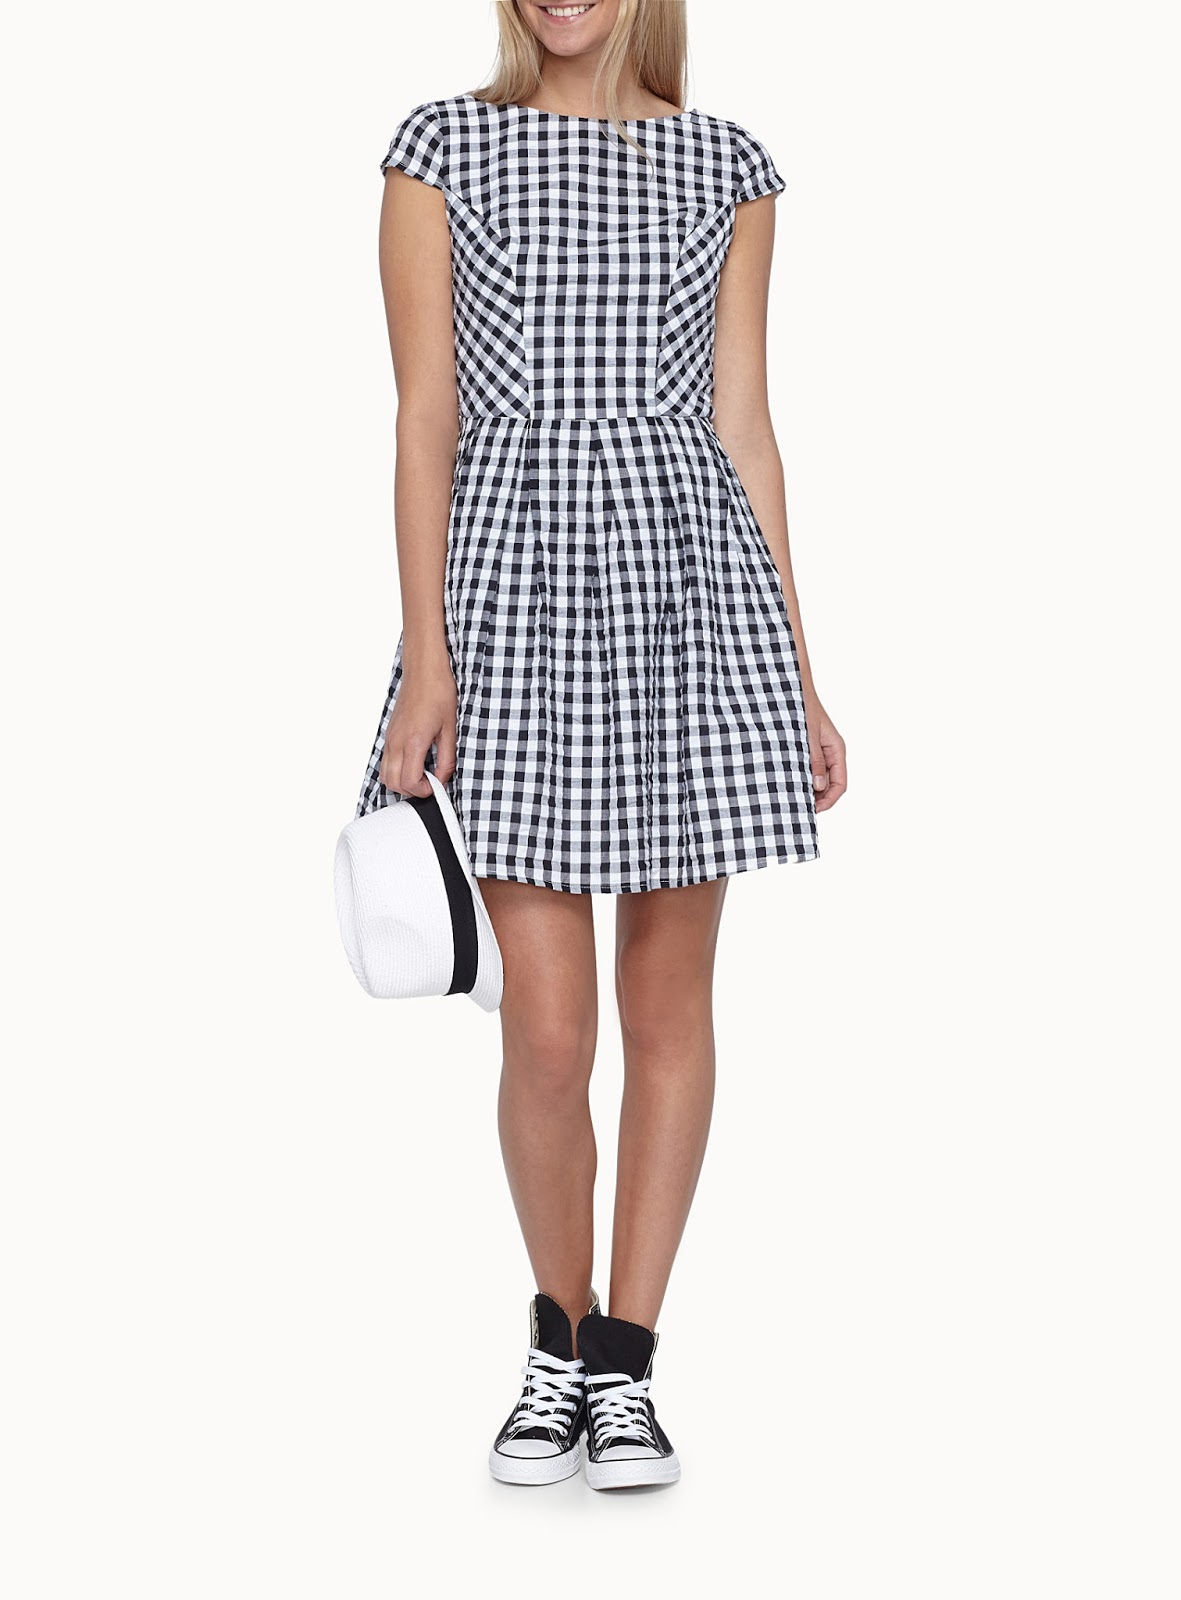 gingham in addition - photo #18